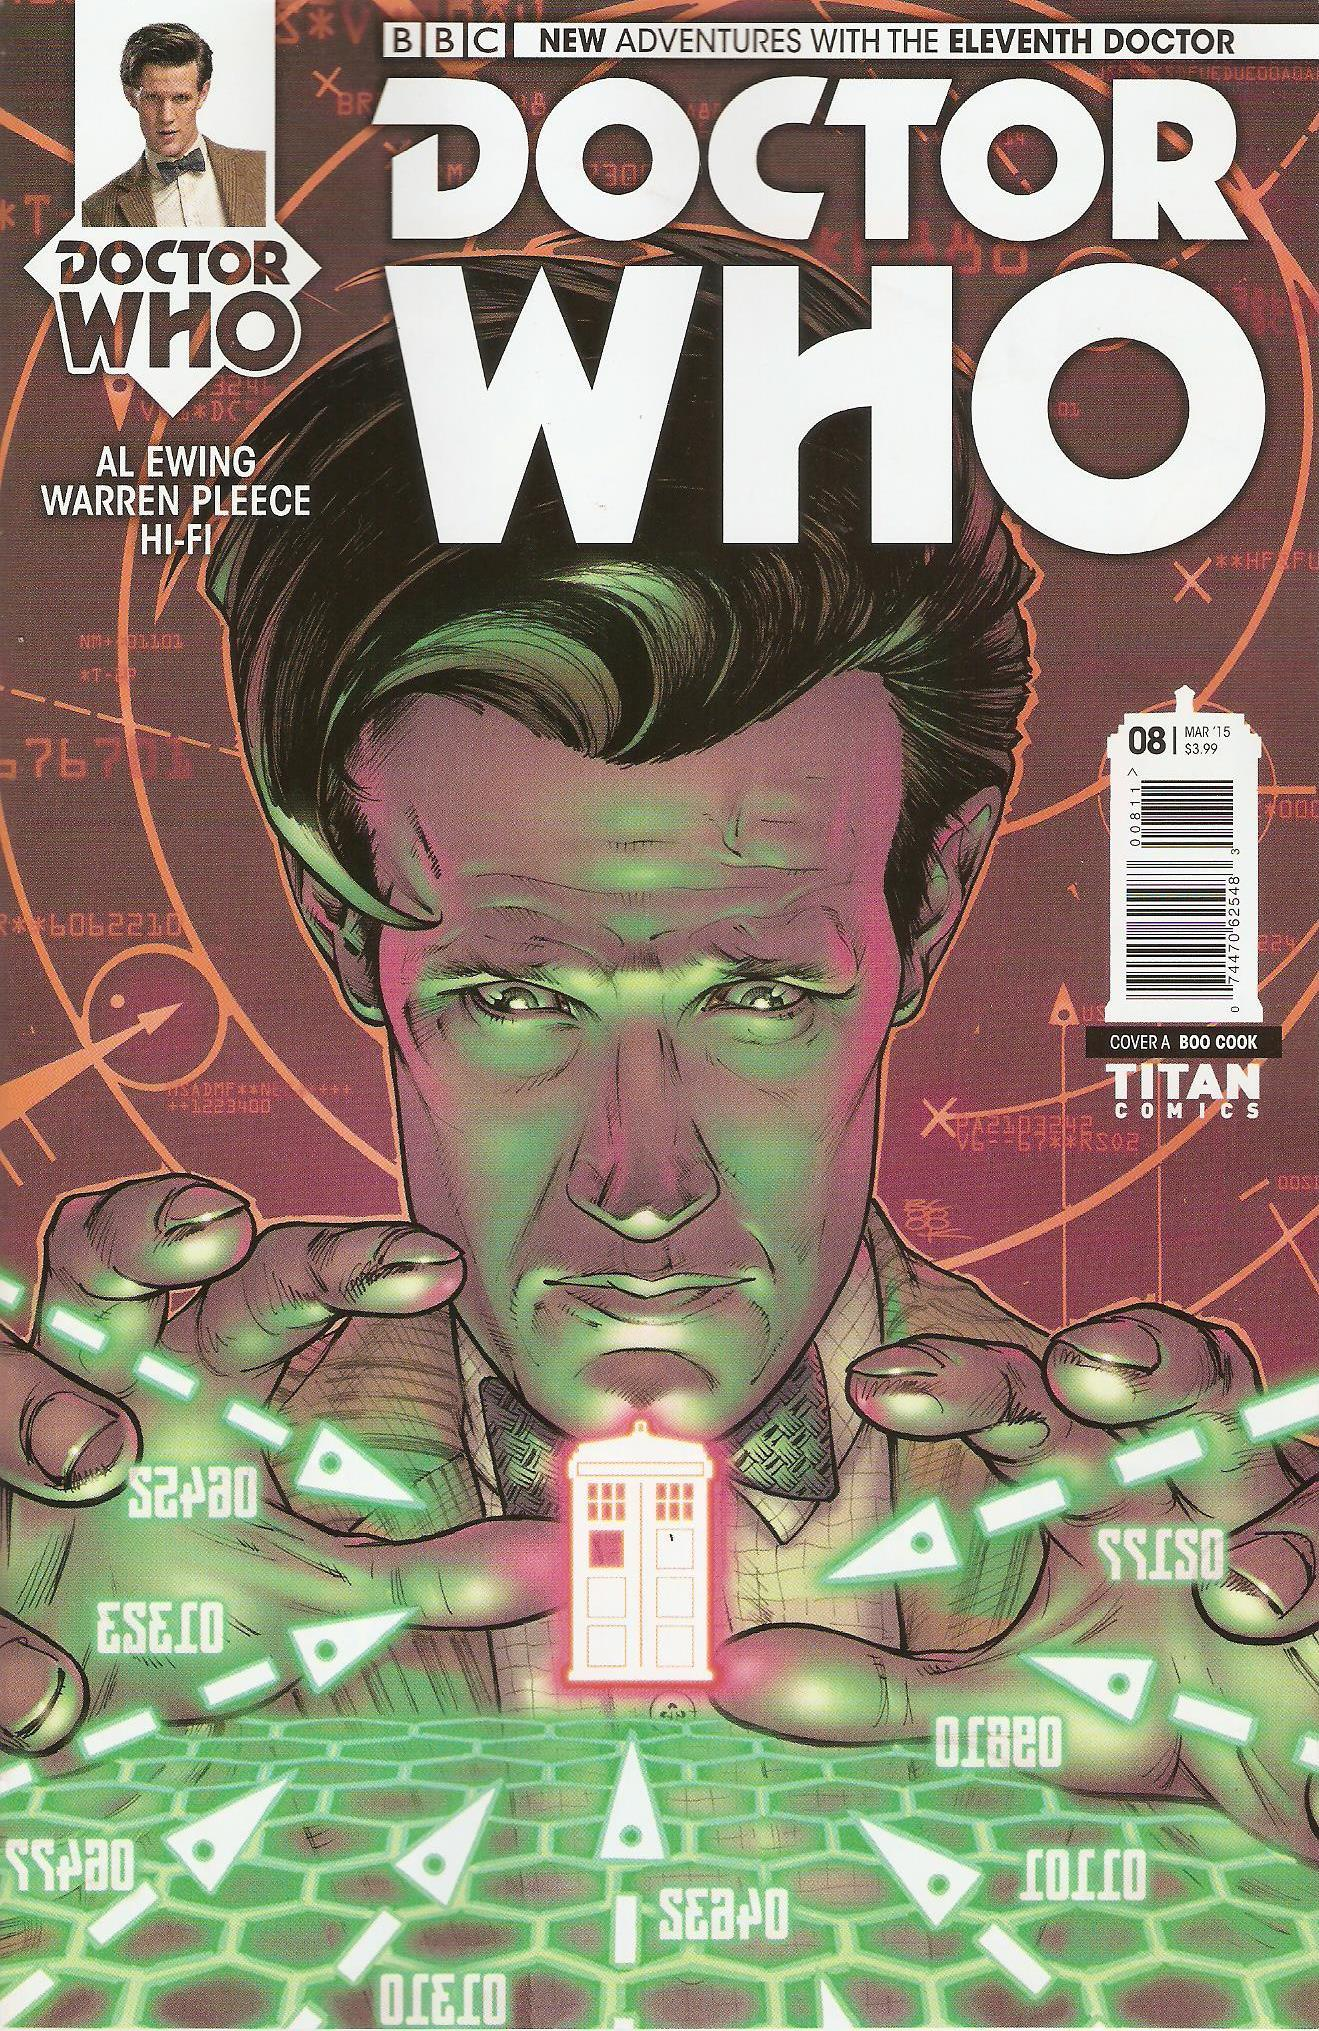 Eleventh doctor issue 8a